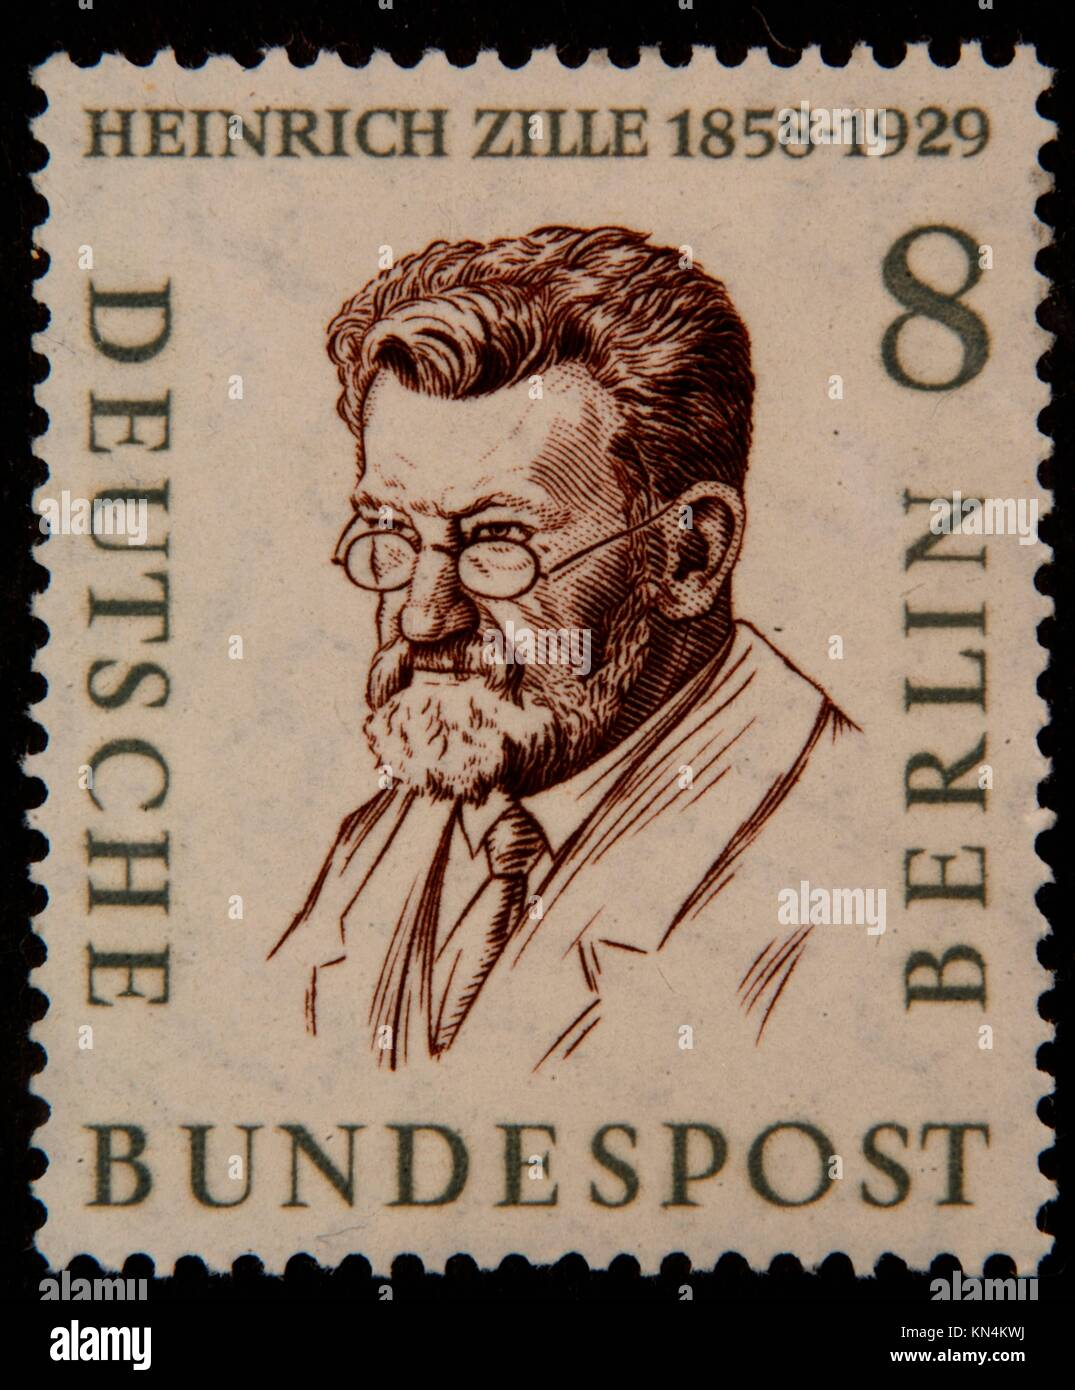 Heinrich Zille, a German illustrator and photographer, portrait on a German (FRG) stamp 1958 - Stock Image